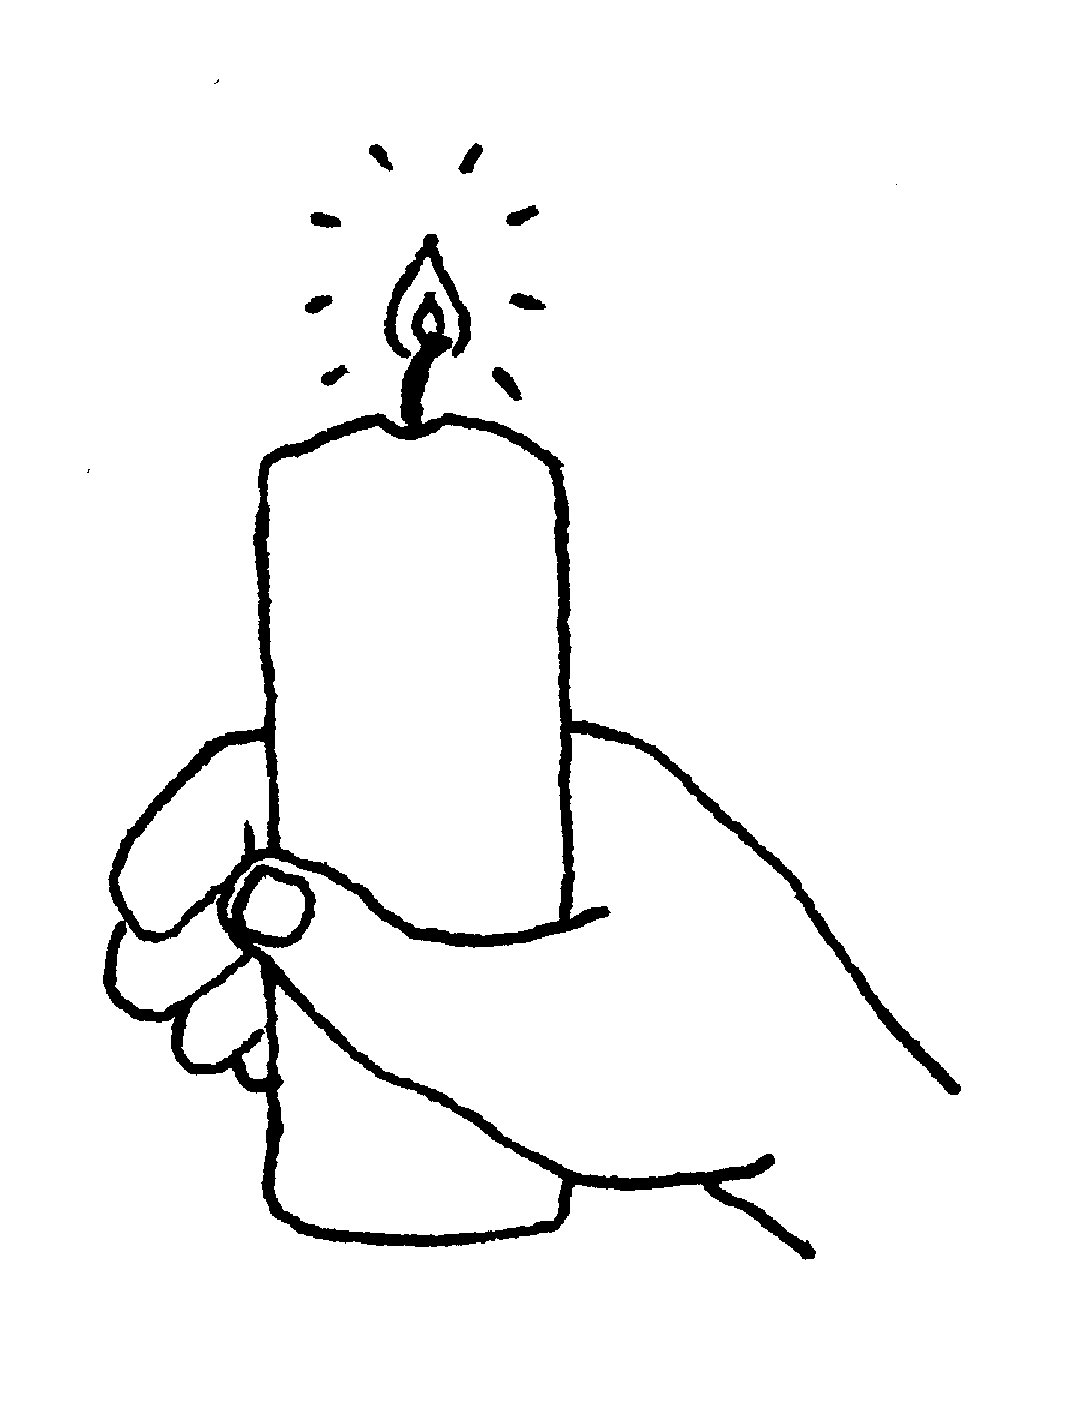 Free candles clip art free clipart image-Free candles clip art free clipart images image-14